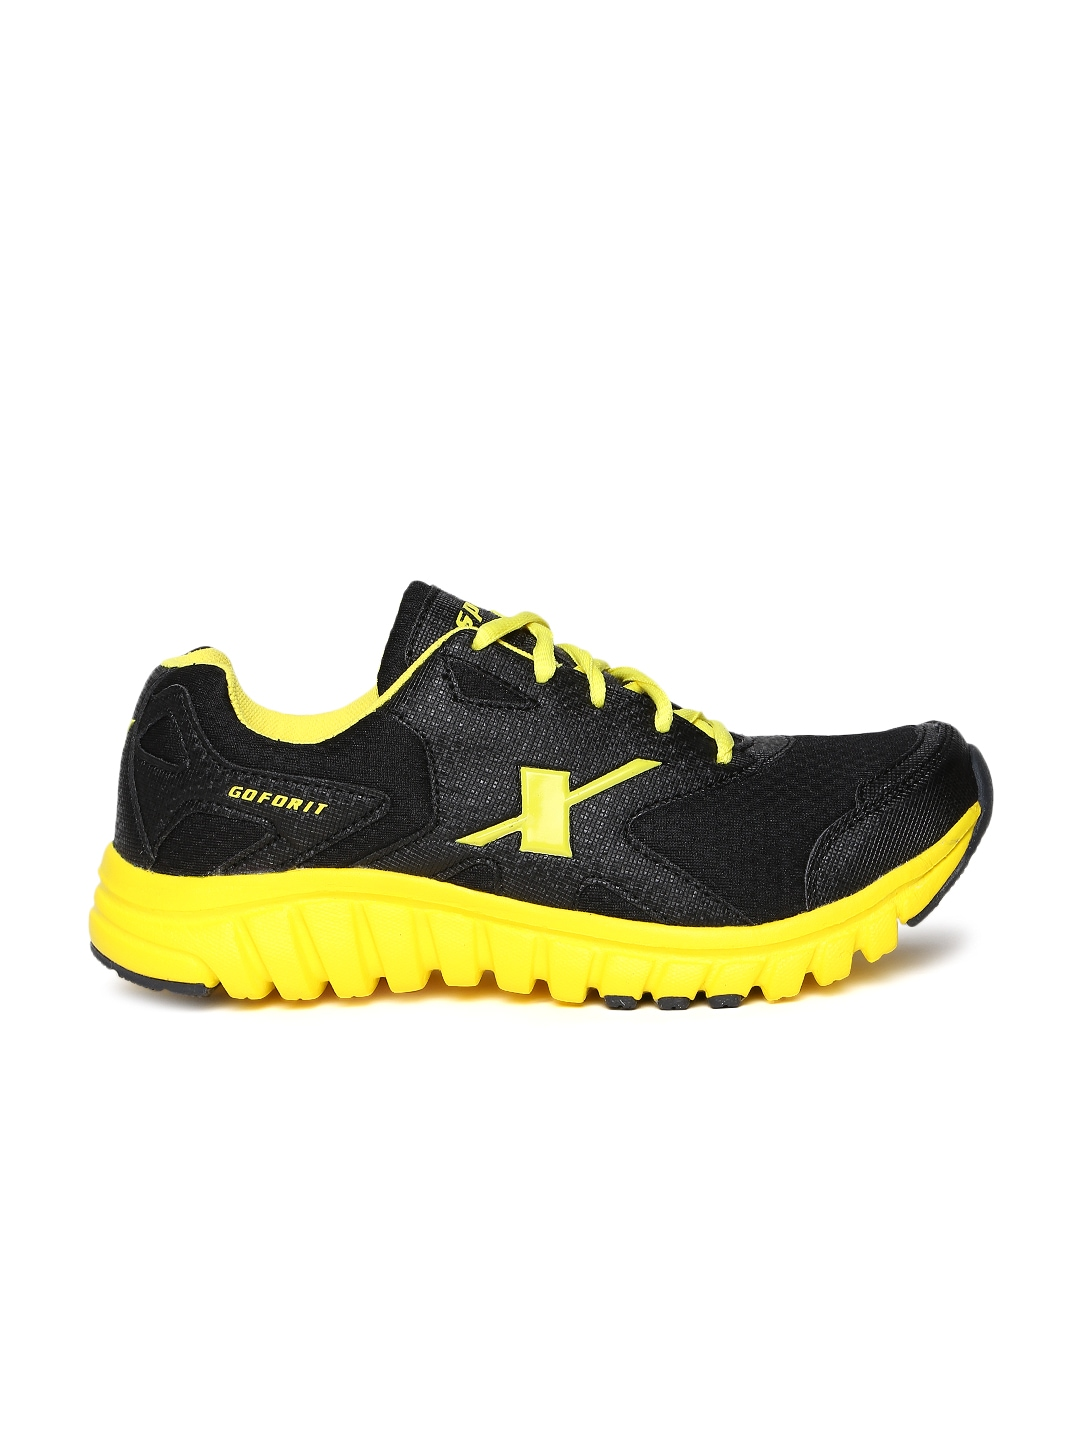 myntra sparx black sports shoes 548063 buy myntra